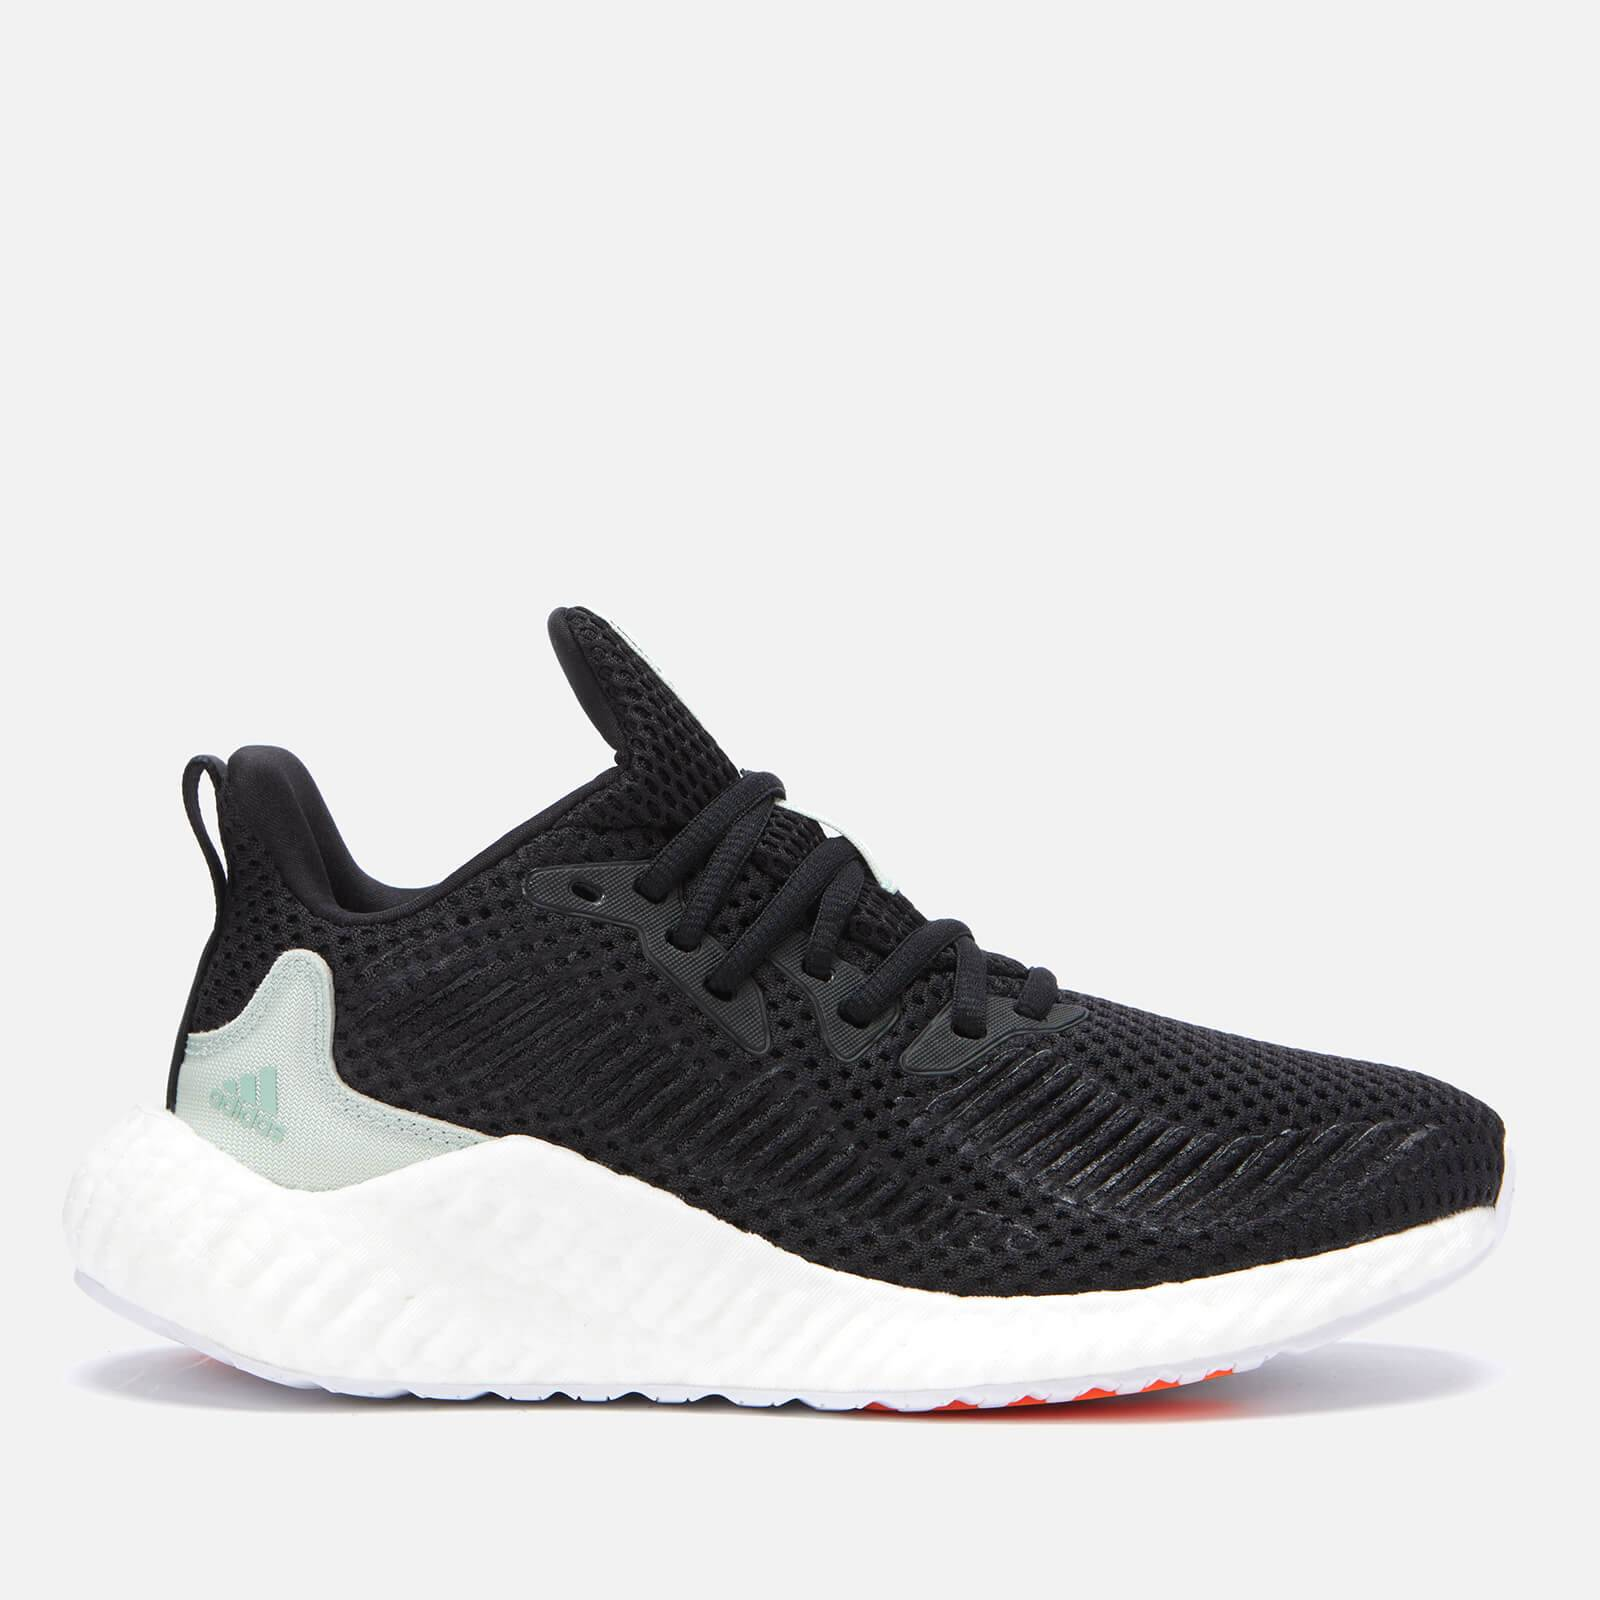 adidas Women's Alphaboost Parley Trainers - Black - UK 6 - Black